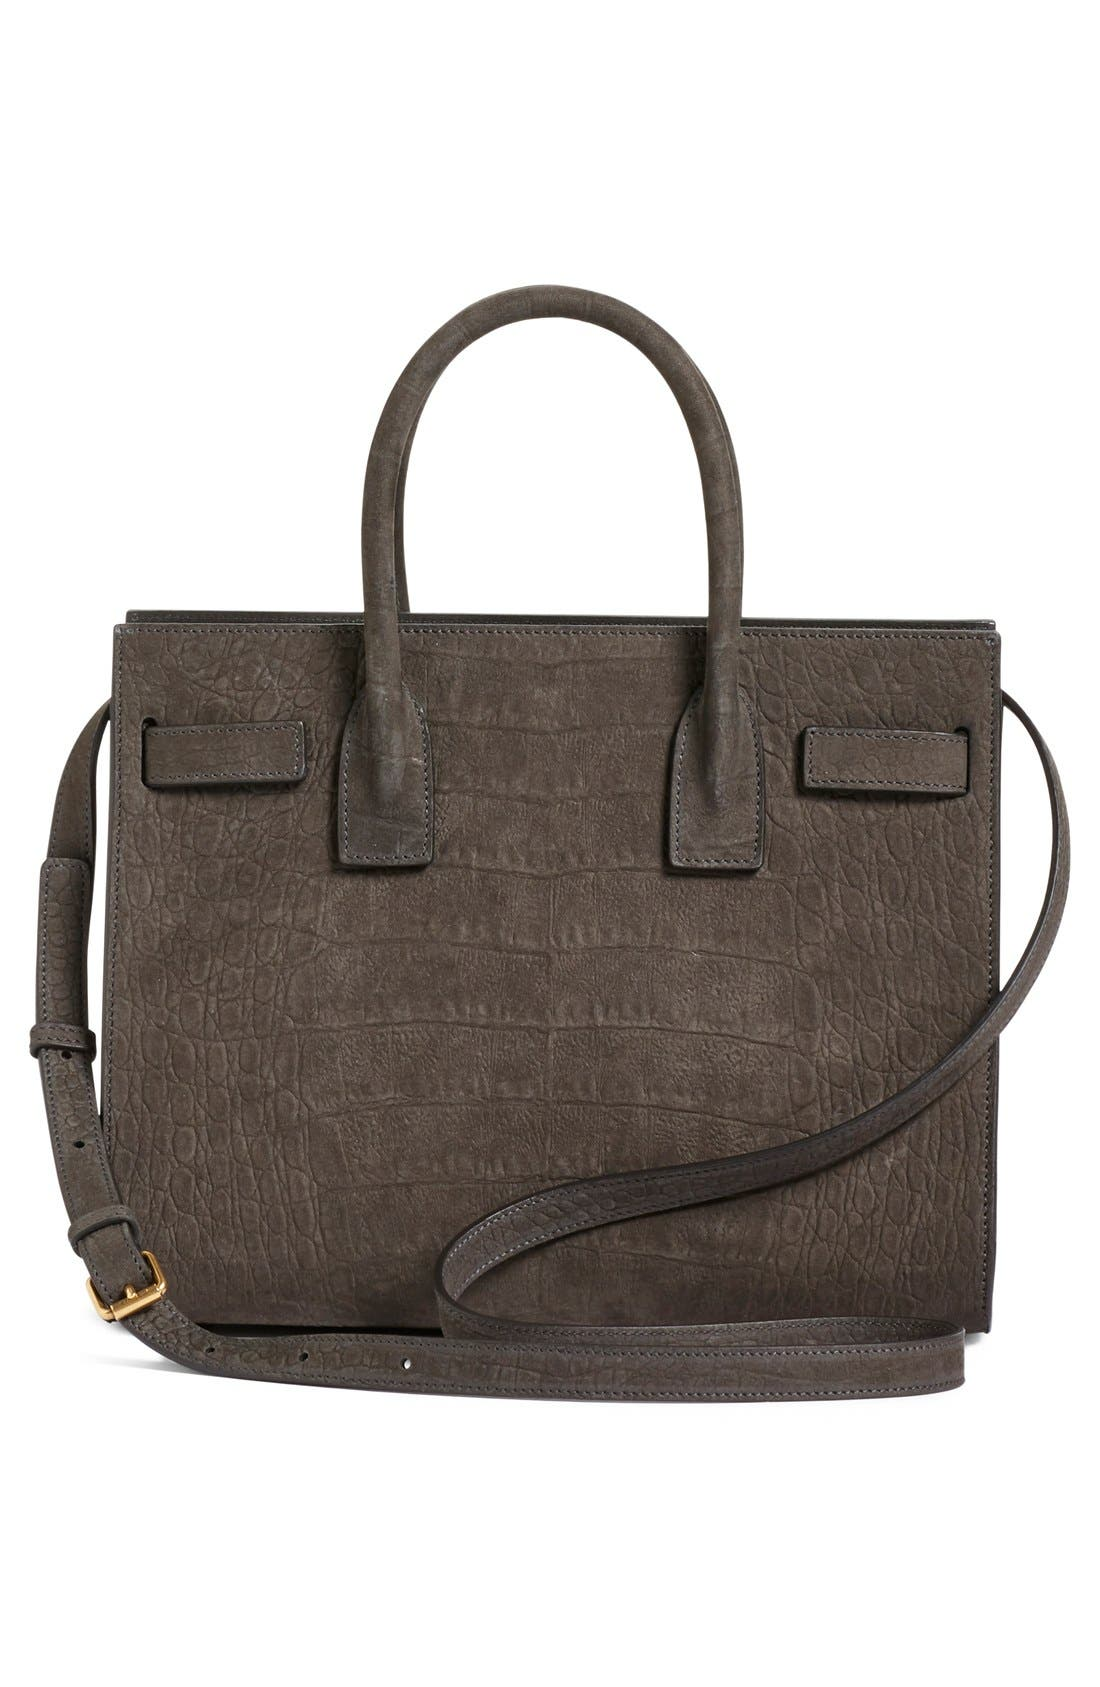 'Baby Sac de Jour' Croc Embossed Leather Tote,                             Alternate thumbnail 4, color,                             022